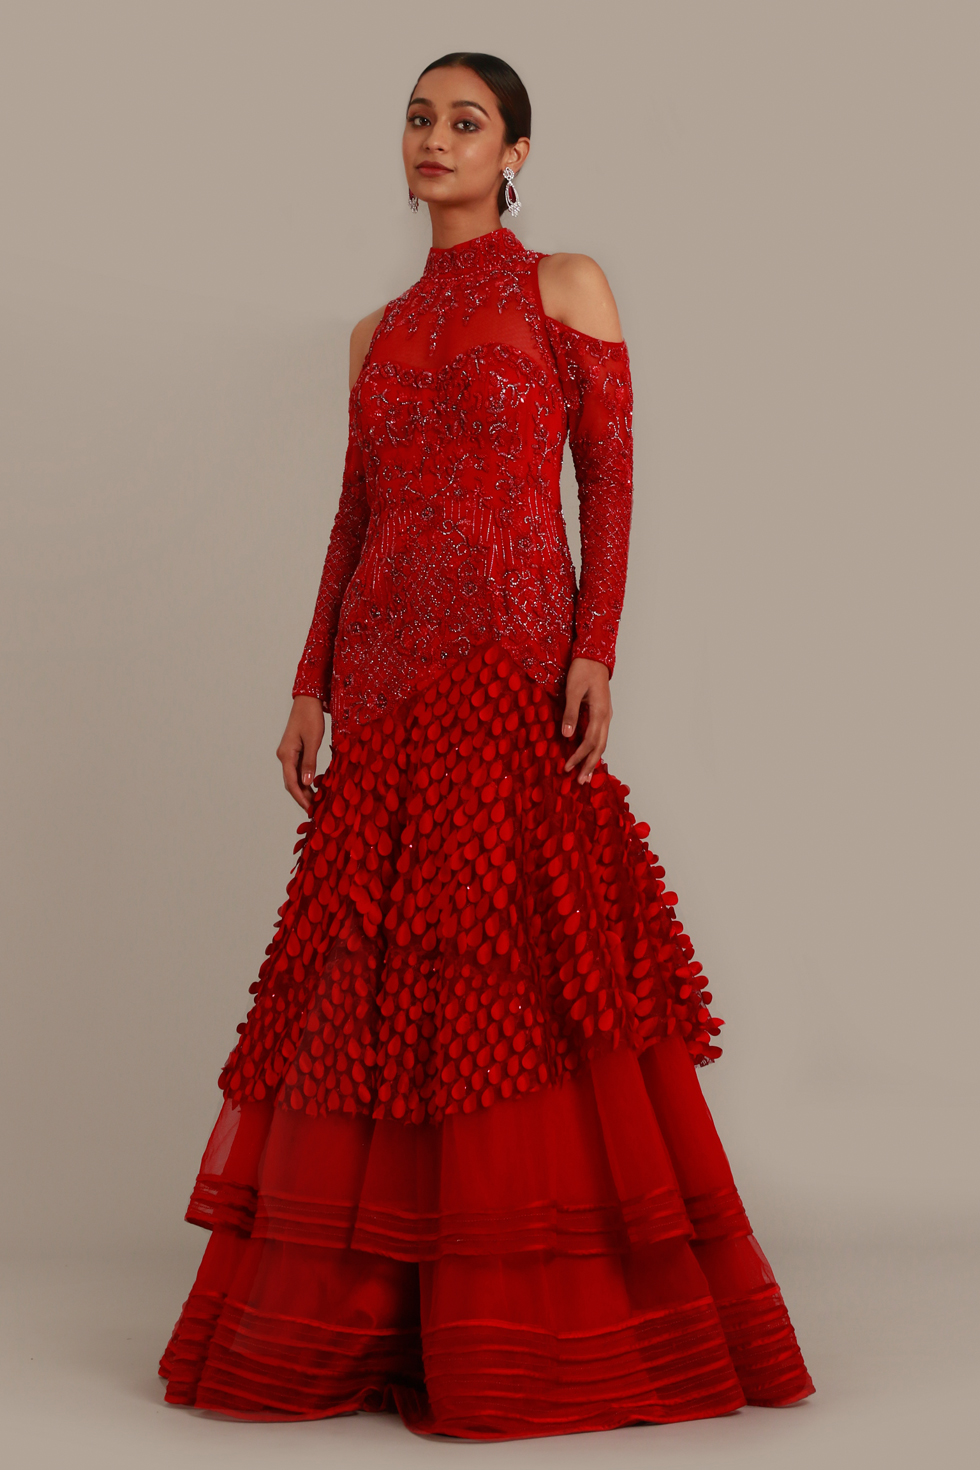 Fiery red gown with cold shoulder, matching embroidery and cut work petal detail